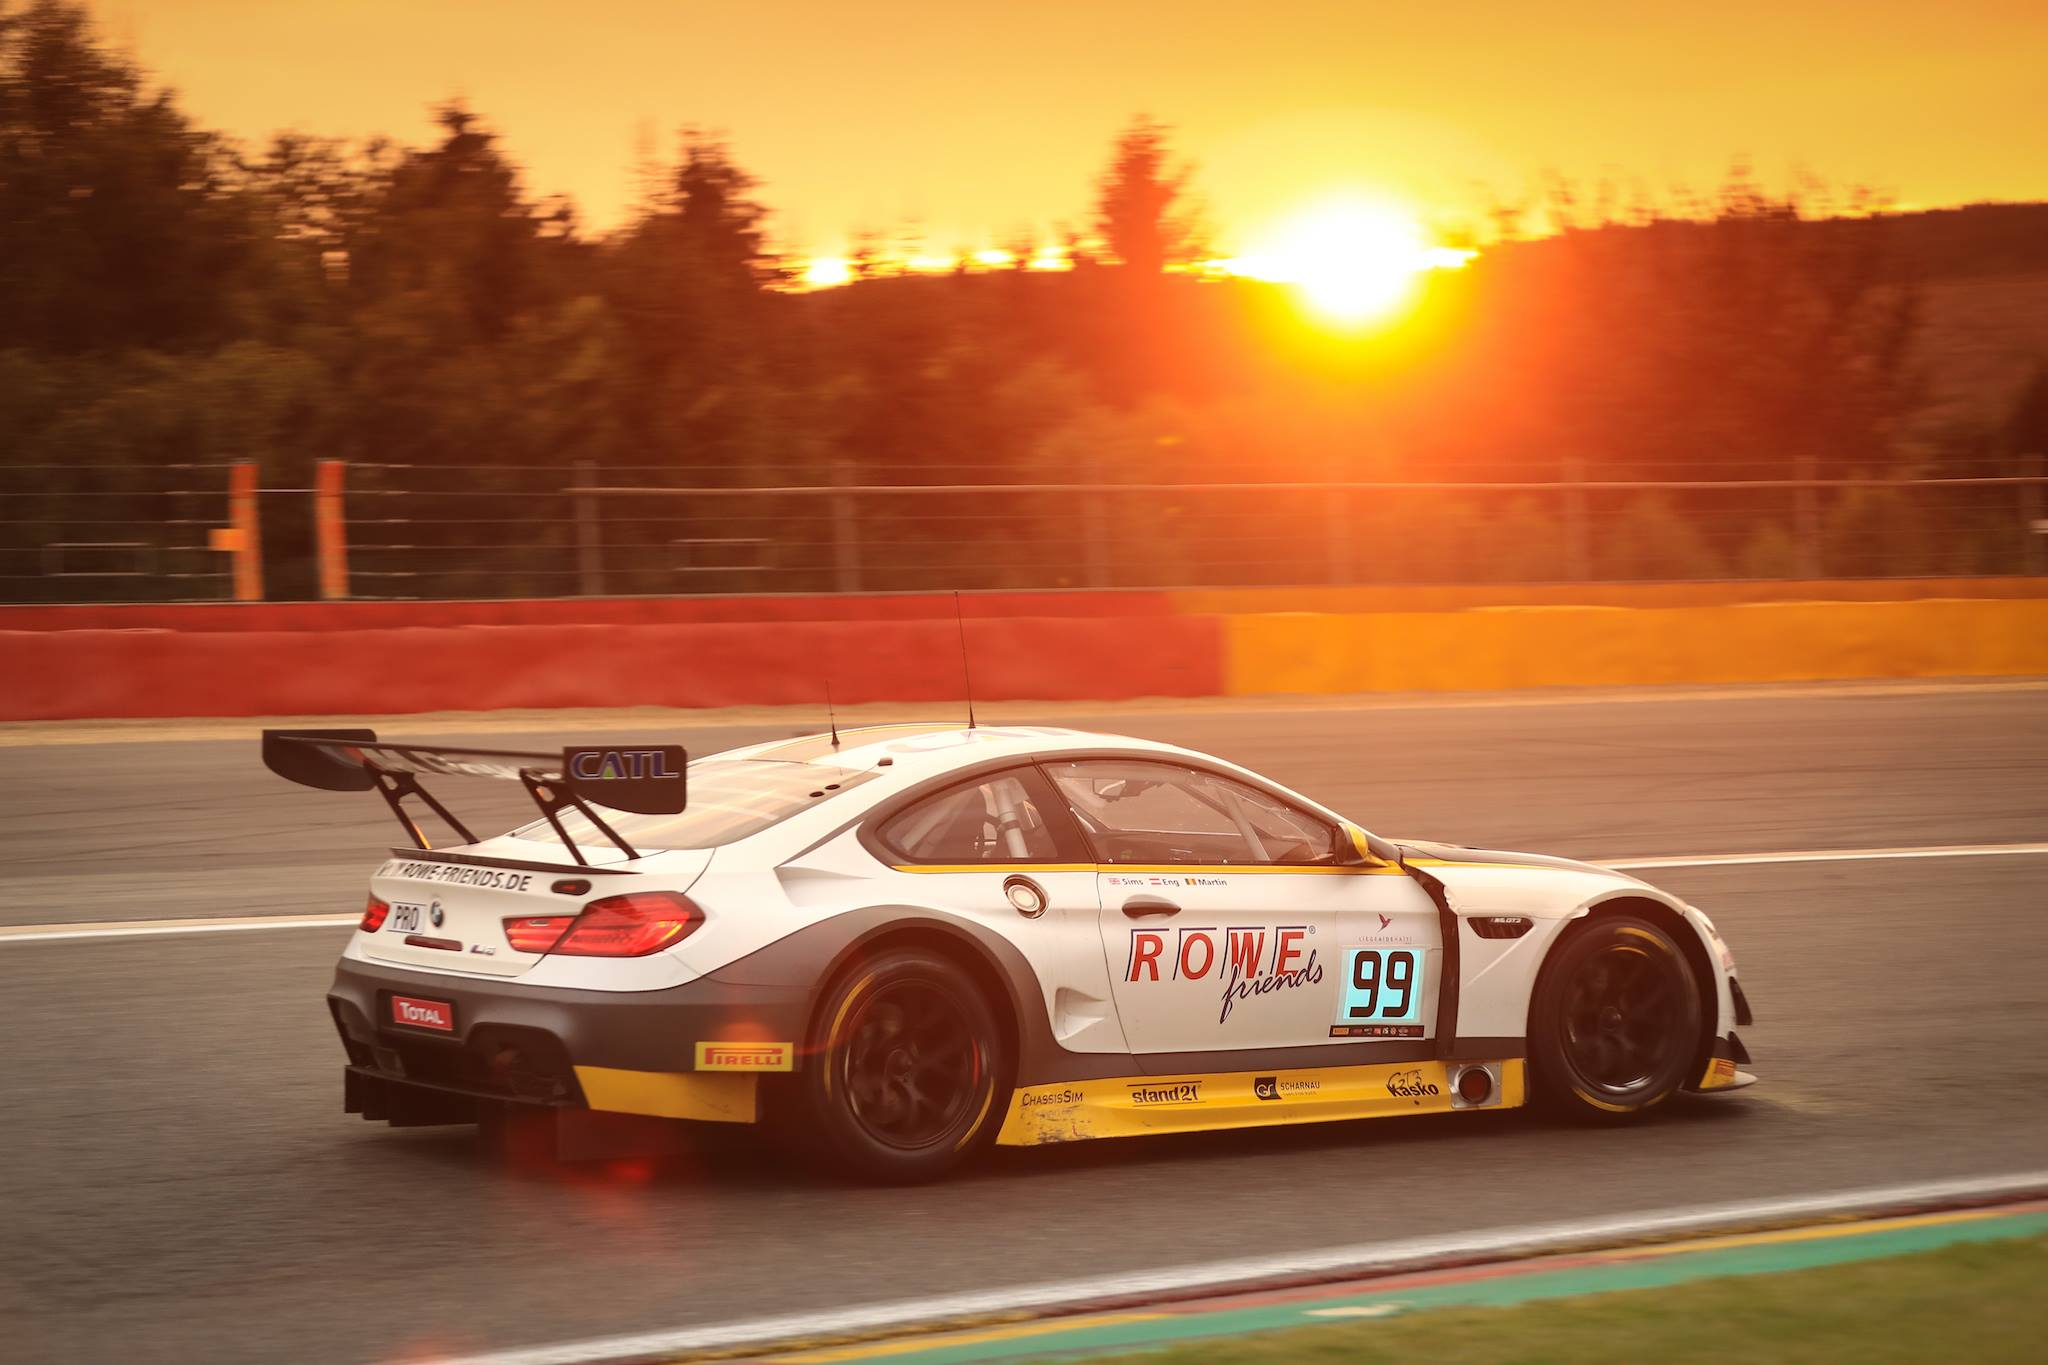 24 Hours of Spa: BMW M6 GT3 Dominates Race to Claim First Major Career Win